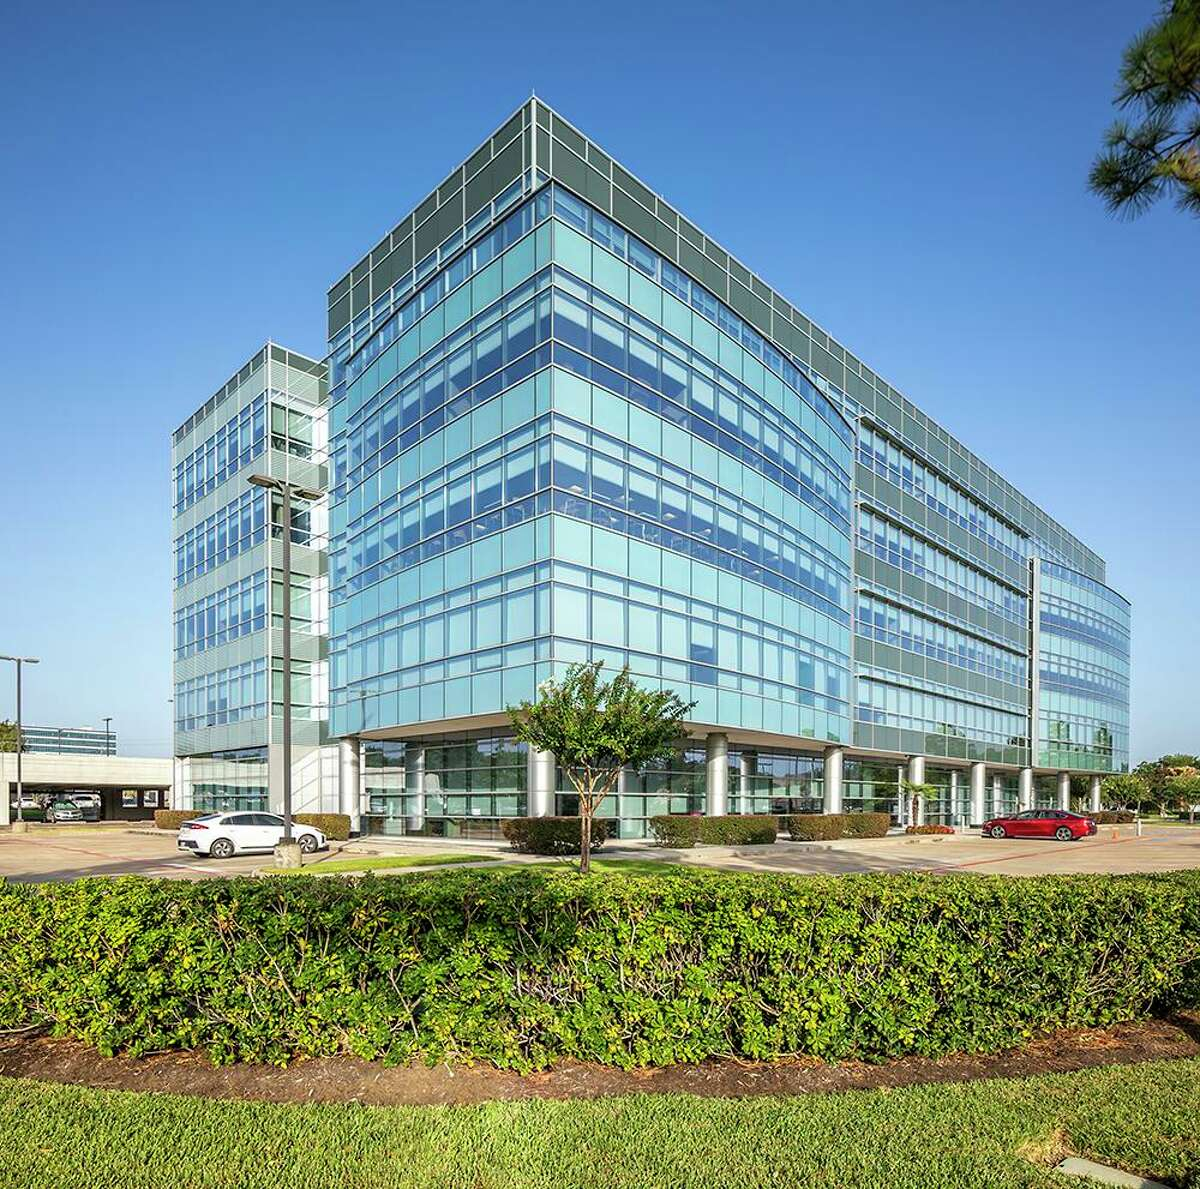 An investment group led by TRC Capital Partners purchased Galaxy II, a 106,168-square-foot office building at 455 East Medical Center Blvd. in Webster. JLL brokered the sale.